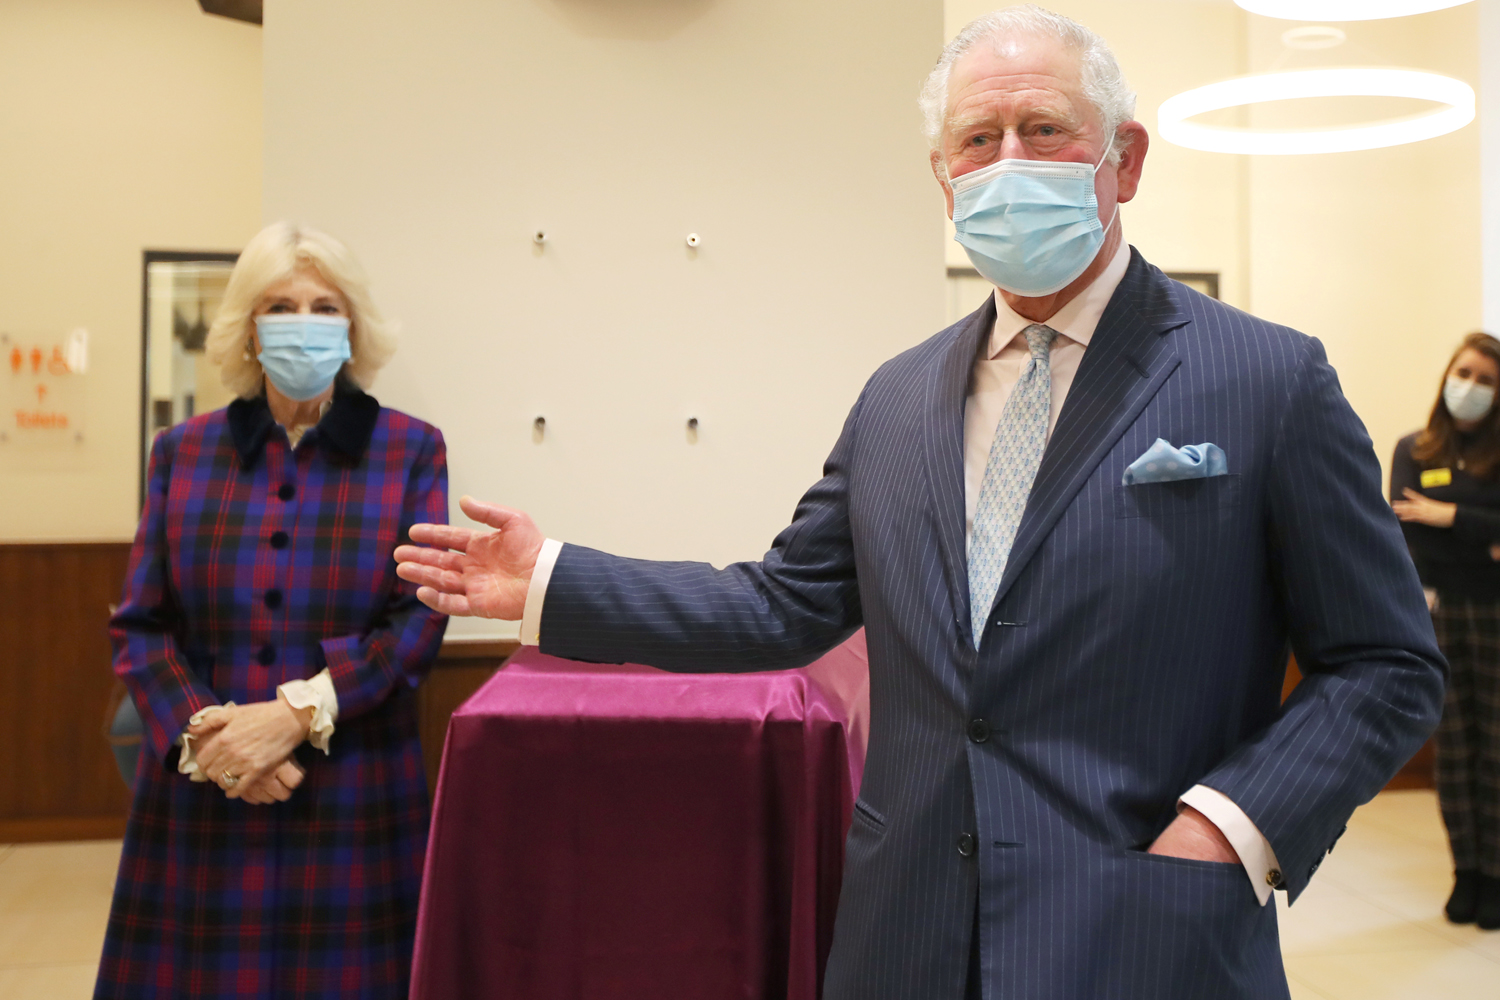 Prince Charles, Prince of Wales and Camilla, Duchess of Cornwall visit The Queen Elizabeth Hospital